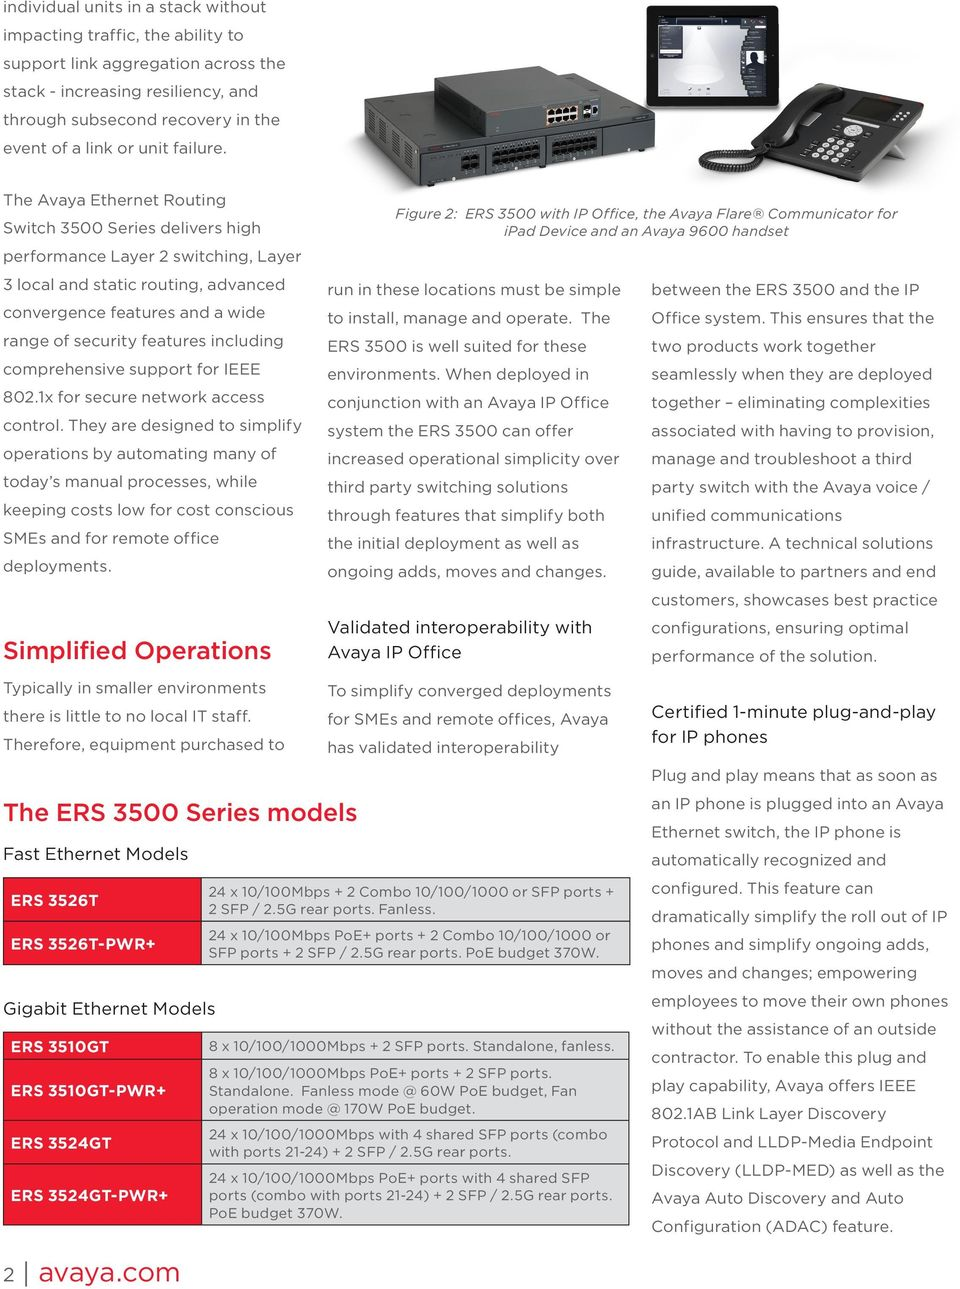 The Avaya Ethernet Routing Switch 3500 Series delivers high performance Layer 2 switching, Layer 3 local and static routing, advanced convergence features and a wide range of security features